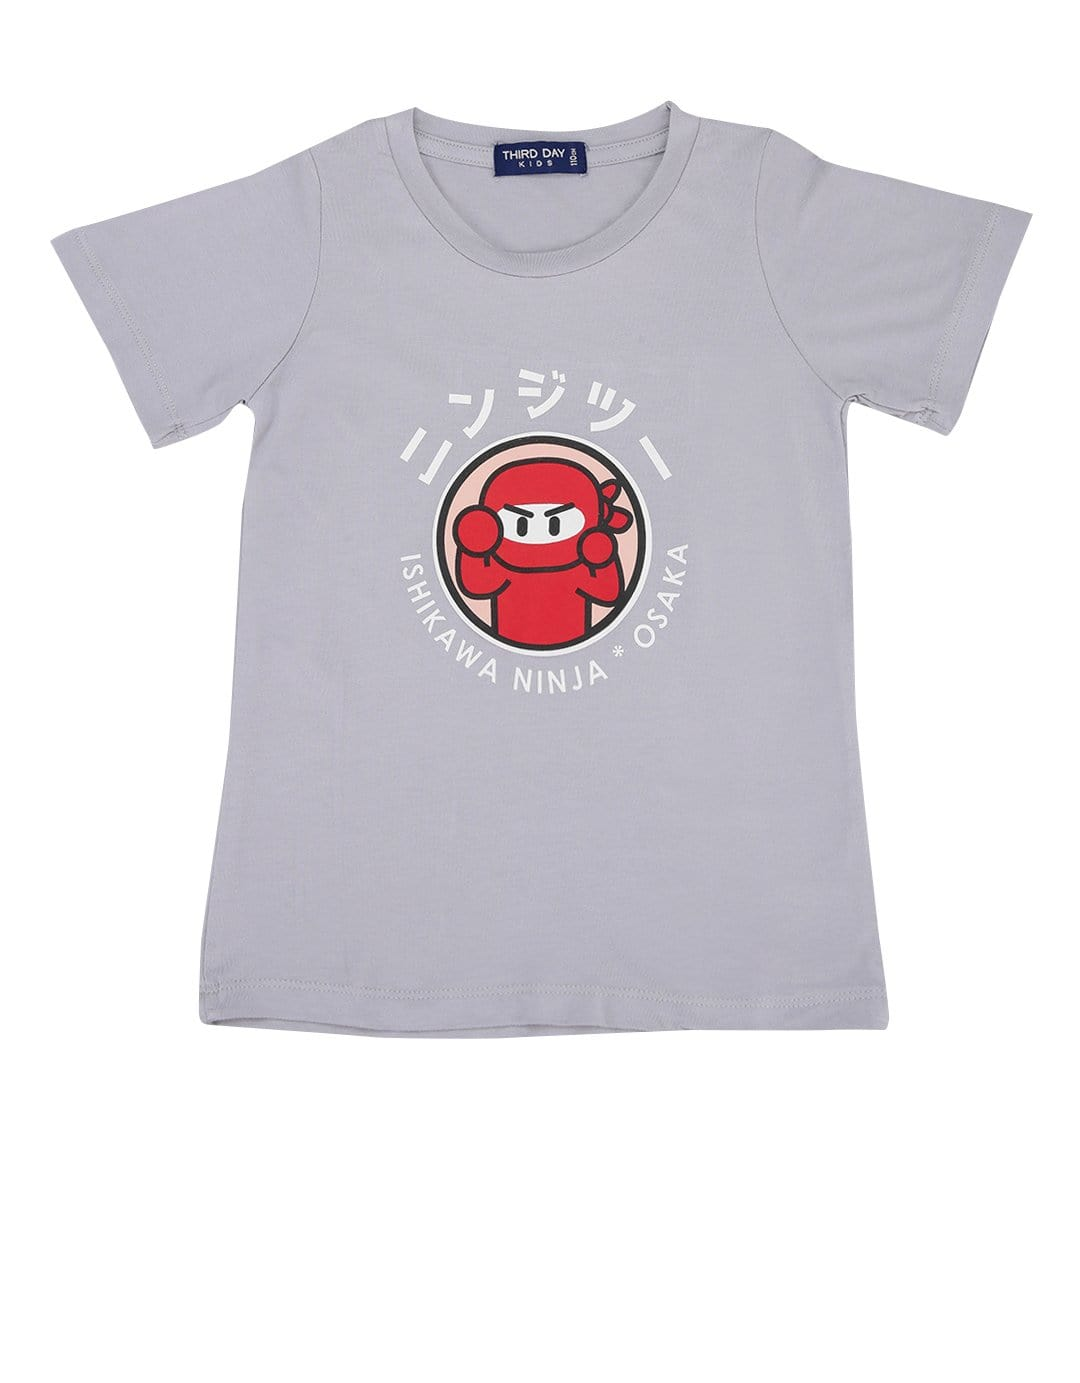 DT139 thirdday kaos balita ishikawa champion grey